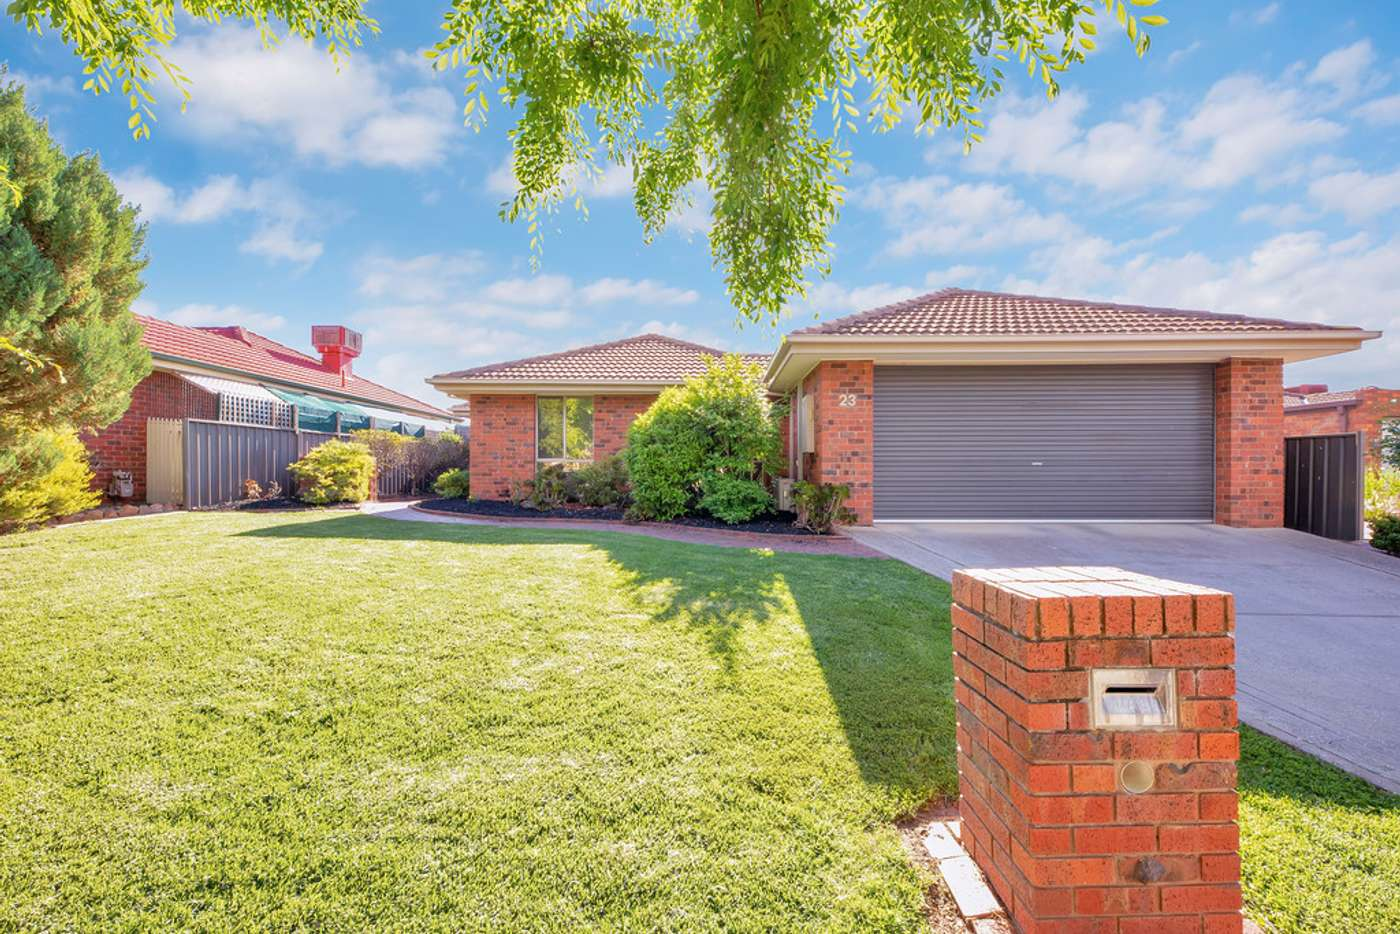 Main view of Homely house listing, 23 Kyle Court, Wodonga VIC 3690